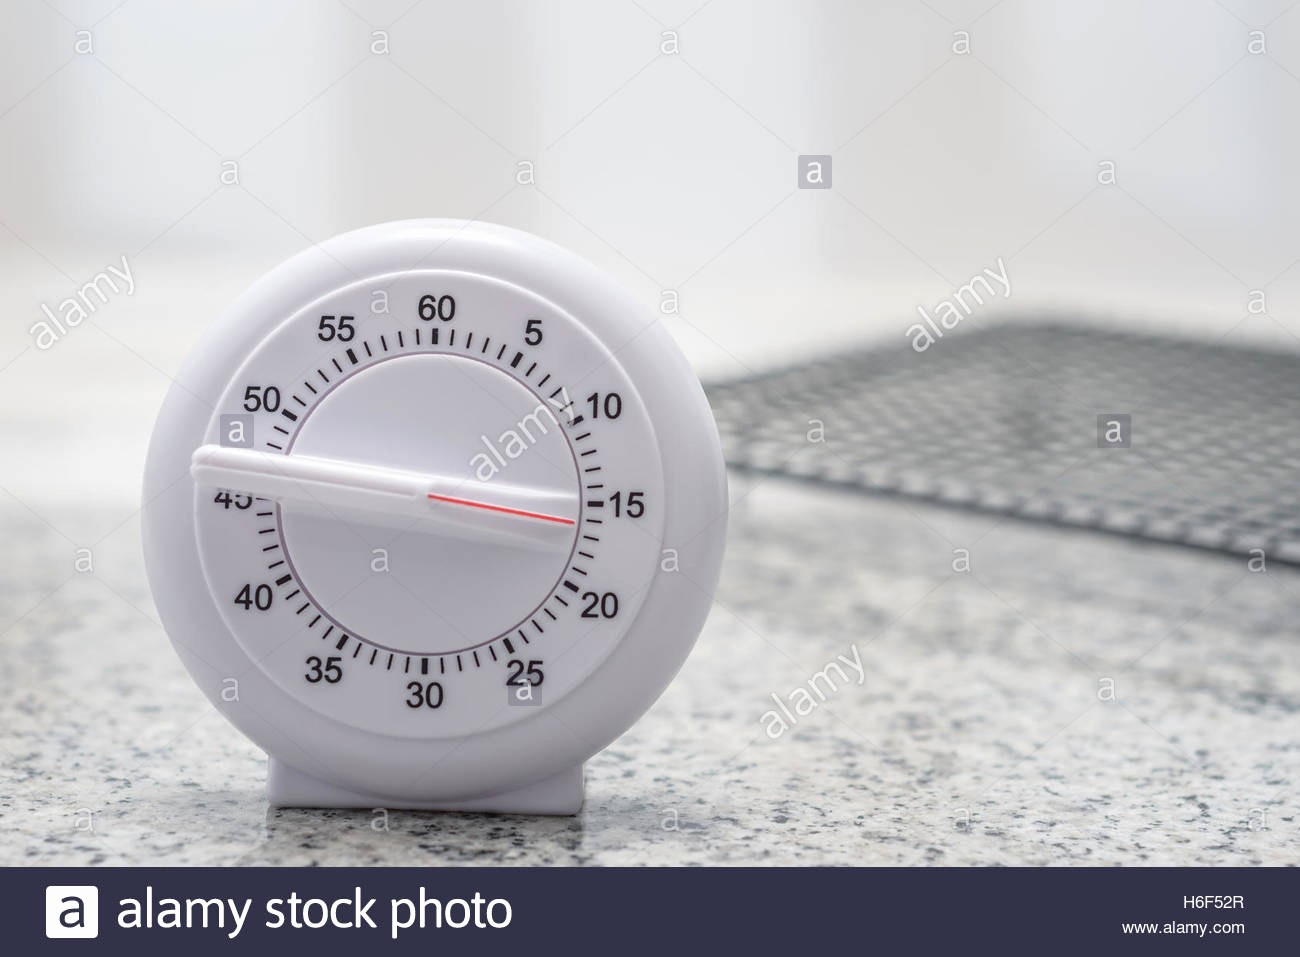 Set A 15 Min Timer Awesome Kitchen Timer Set for 15 Minutes with Cooling Rack In the